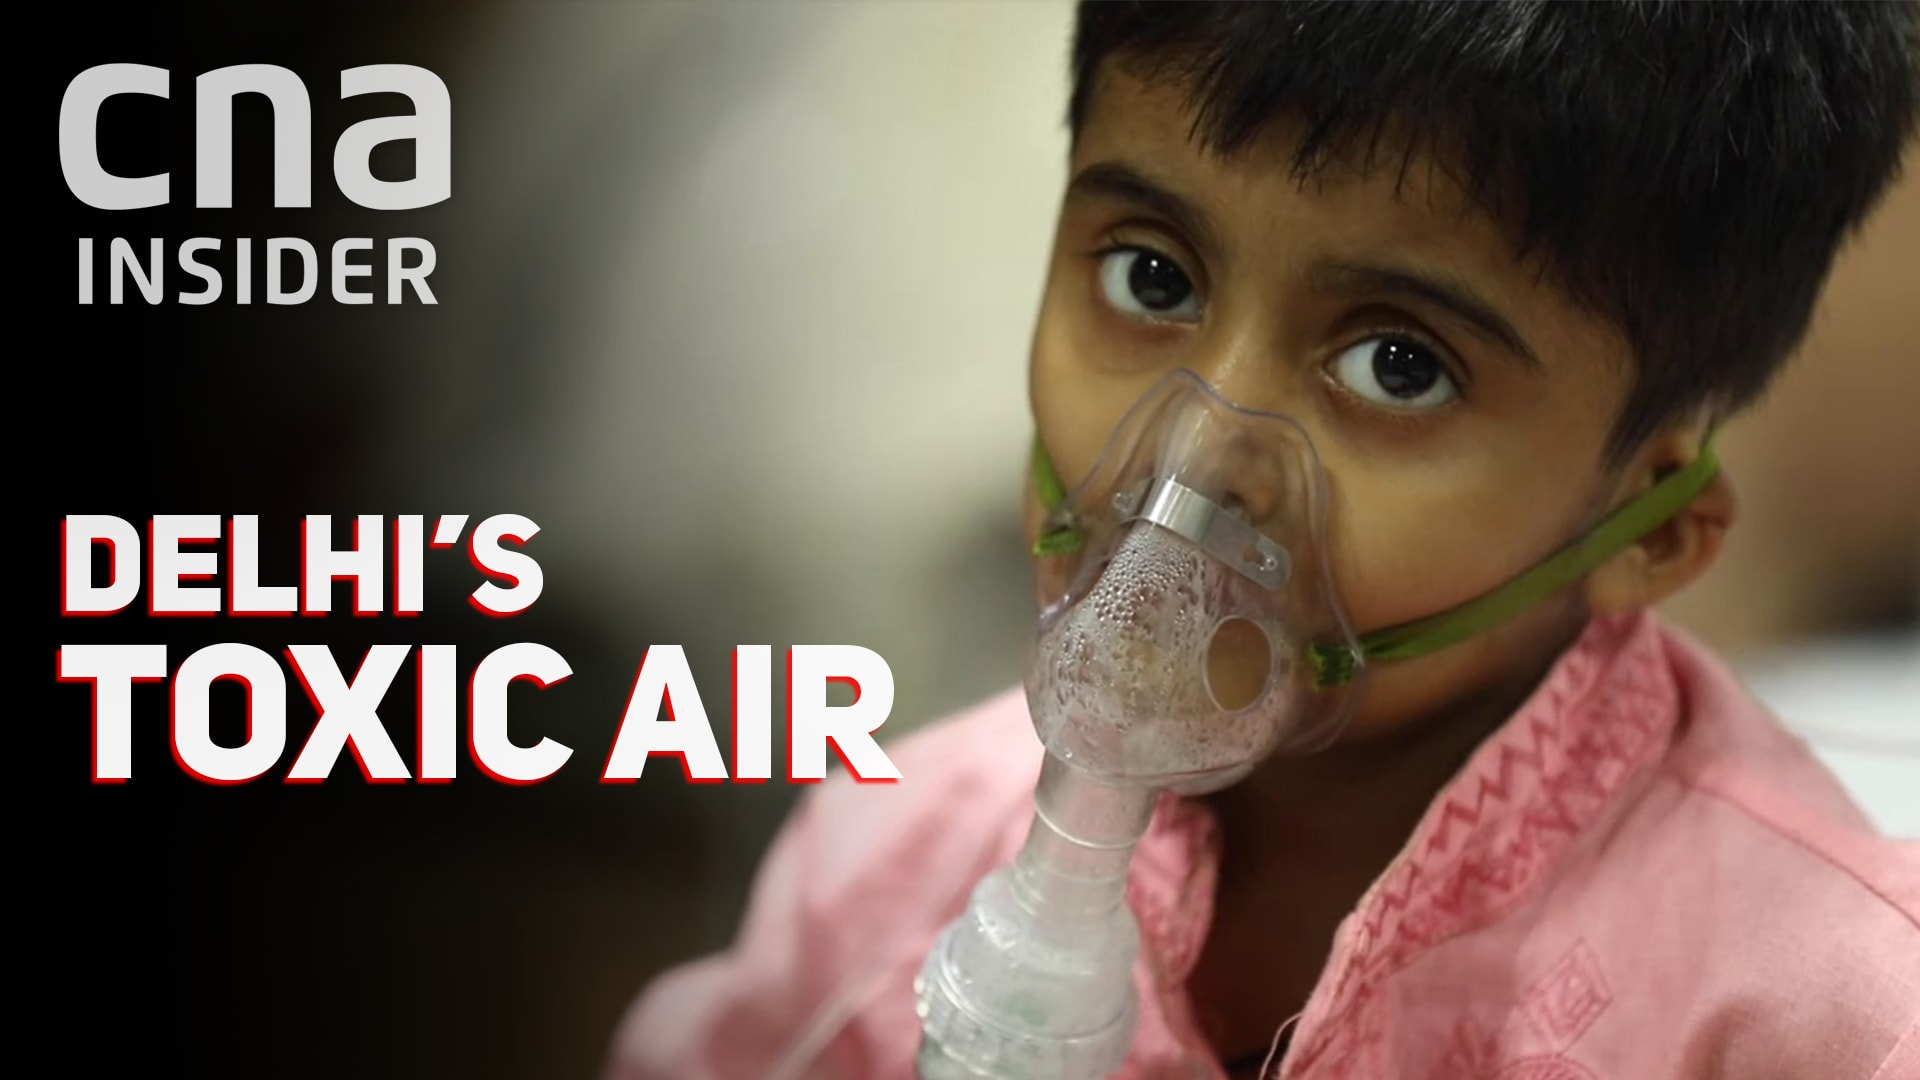 India's youth fight for clean air